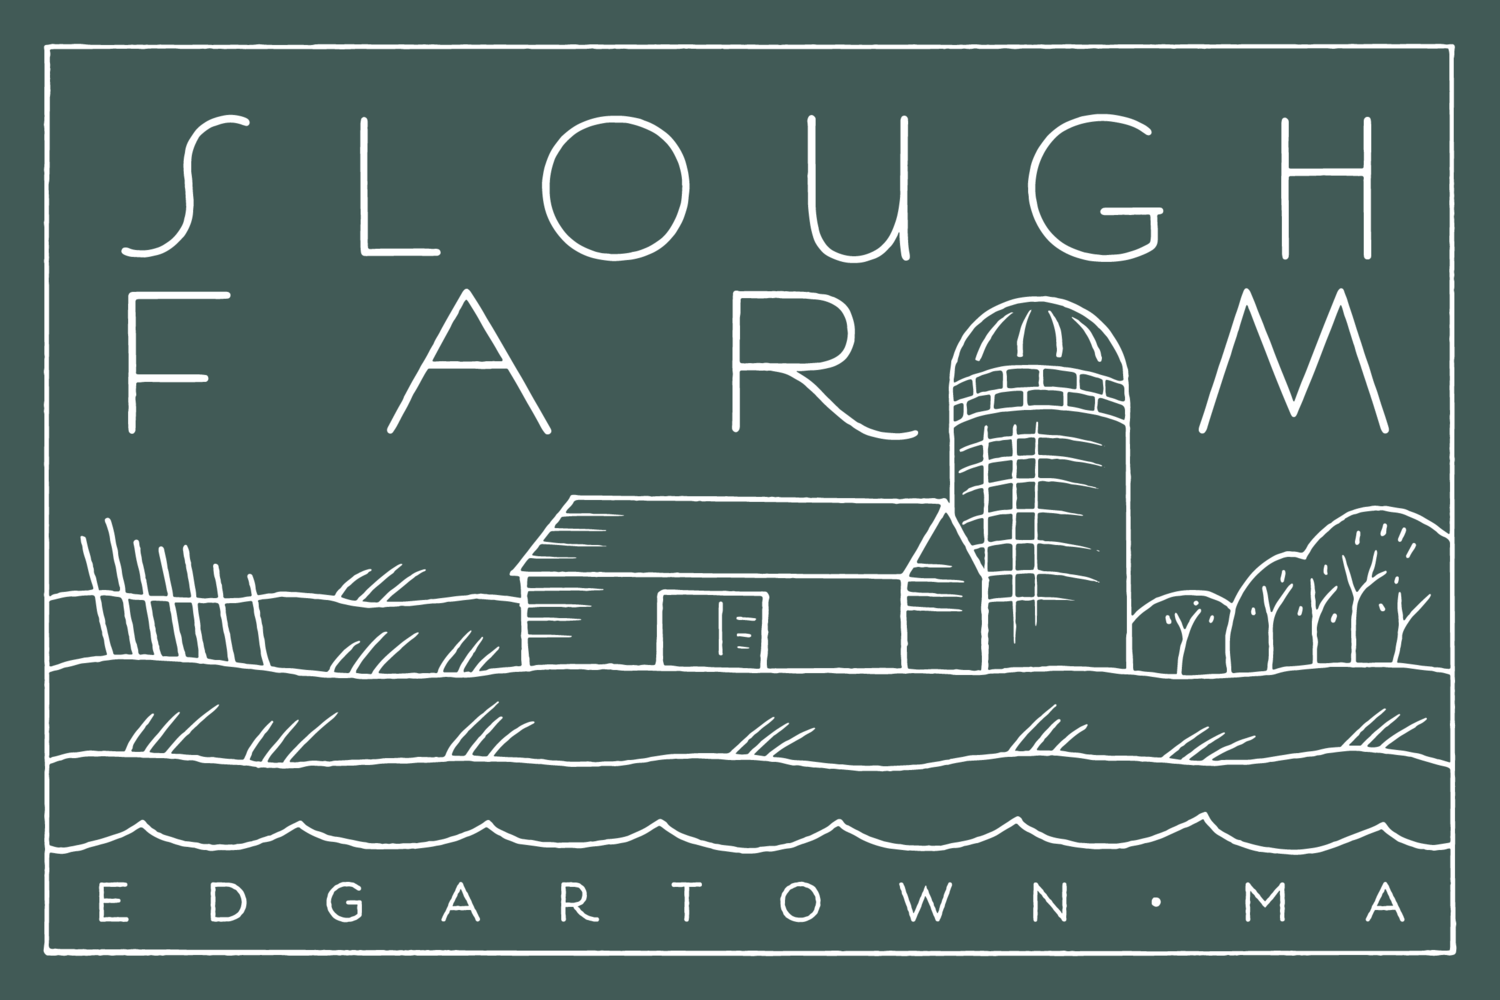 Art Shows & Galleries Event in Edgartown